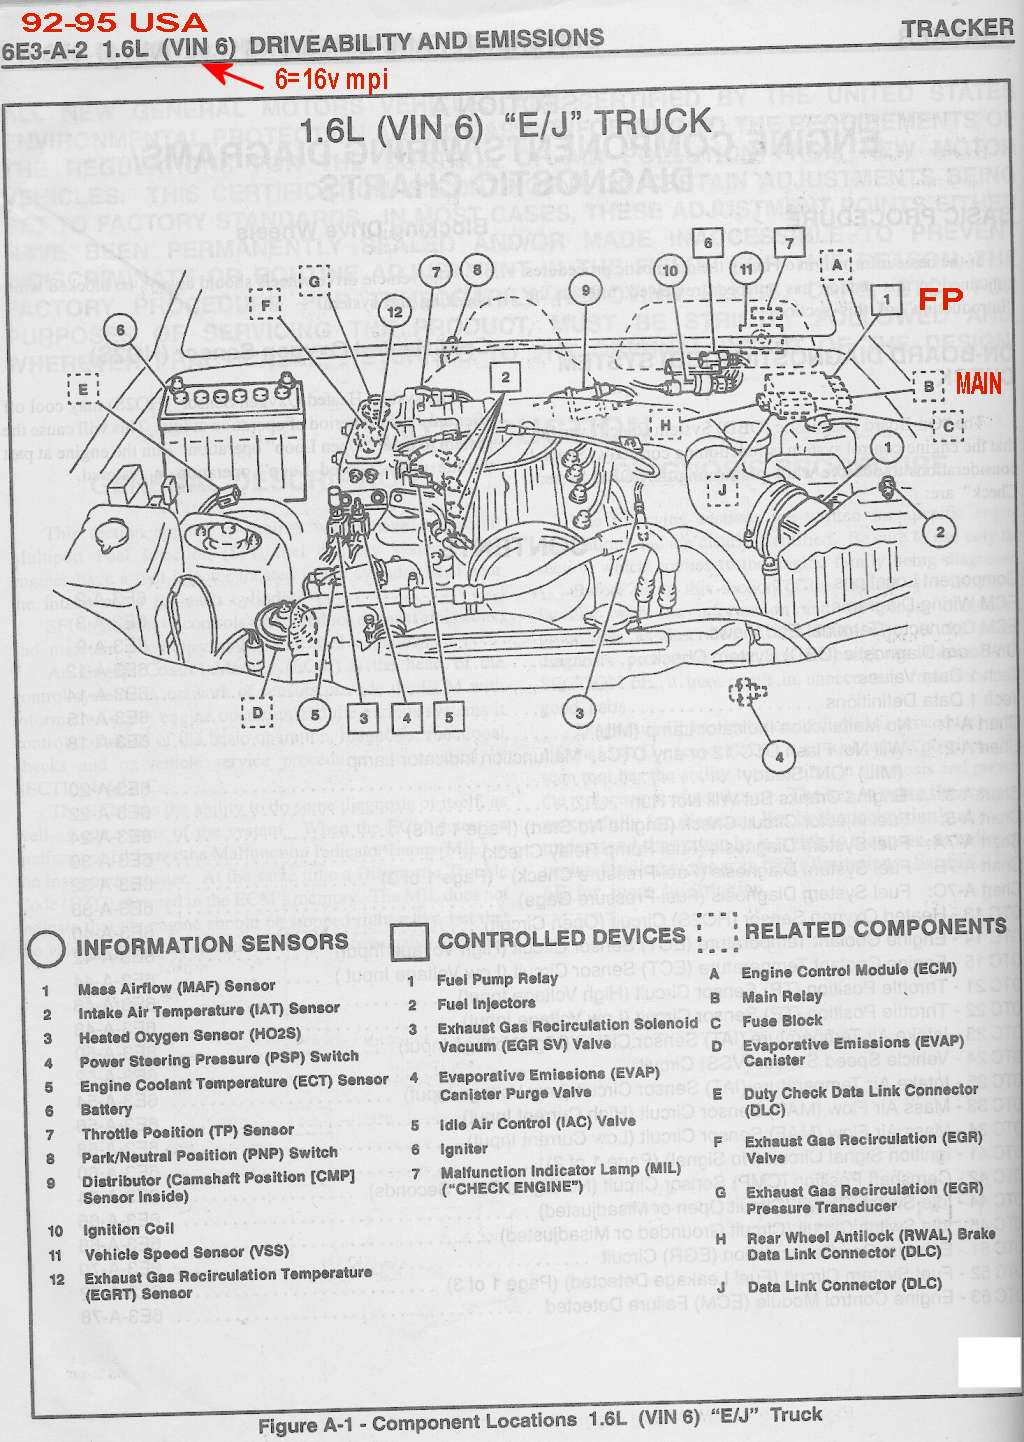 schematics to run engine rh fixkick com 1996 Geo Tracker Engine Parts Geo Tracker Engine Replacement